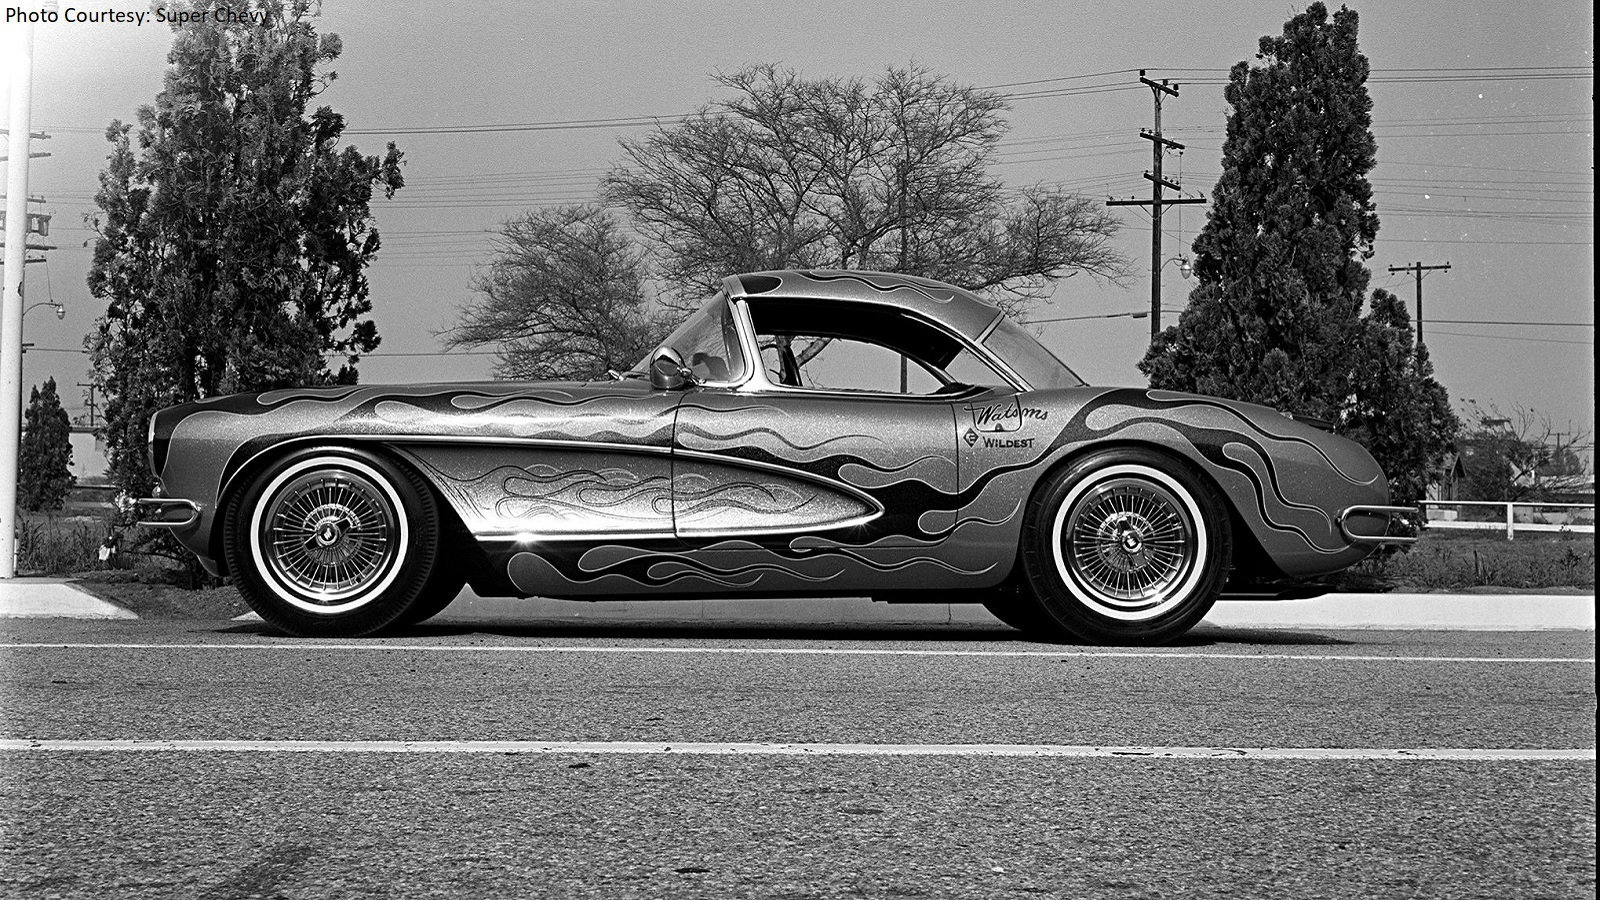 Watson's 1957 Corvette Was Definitely the Wildest